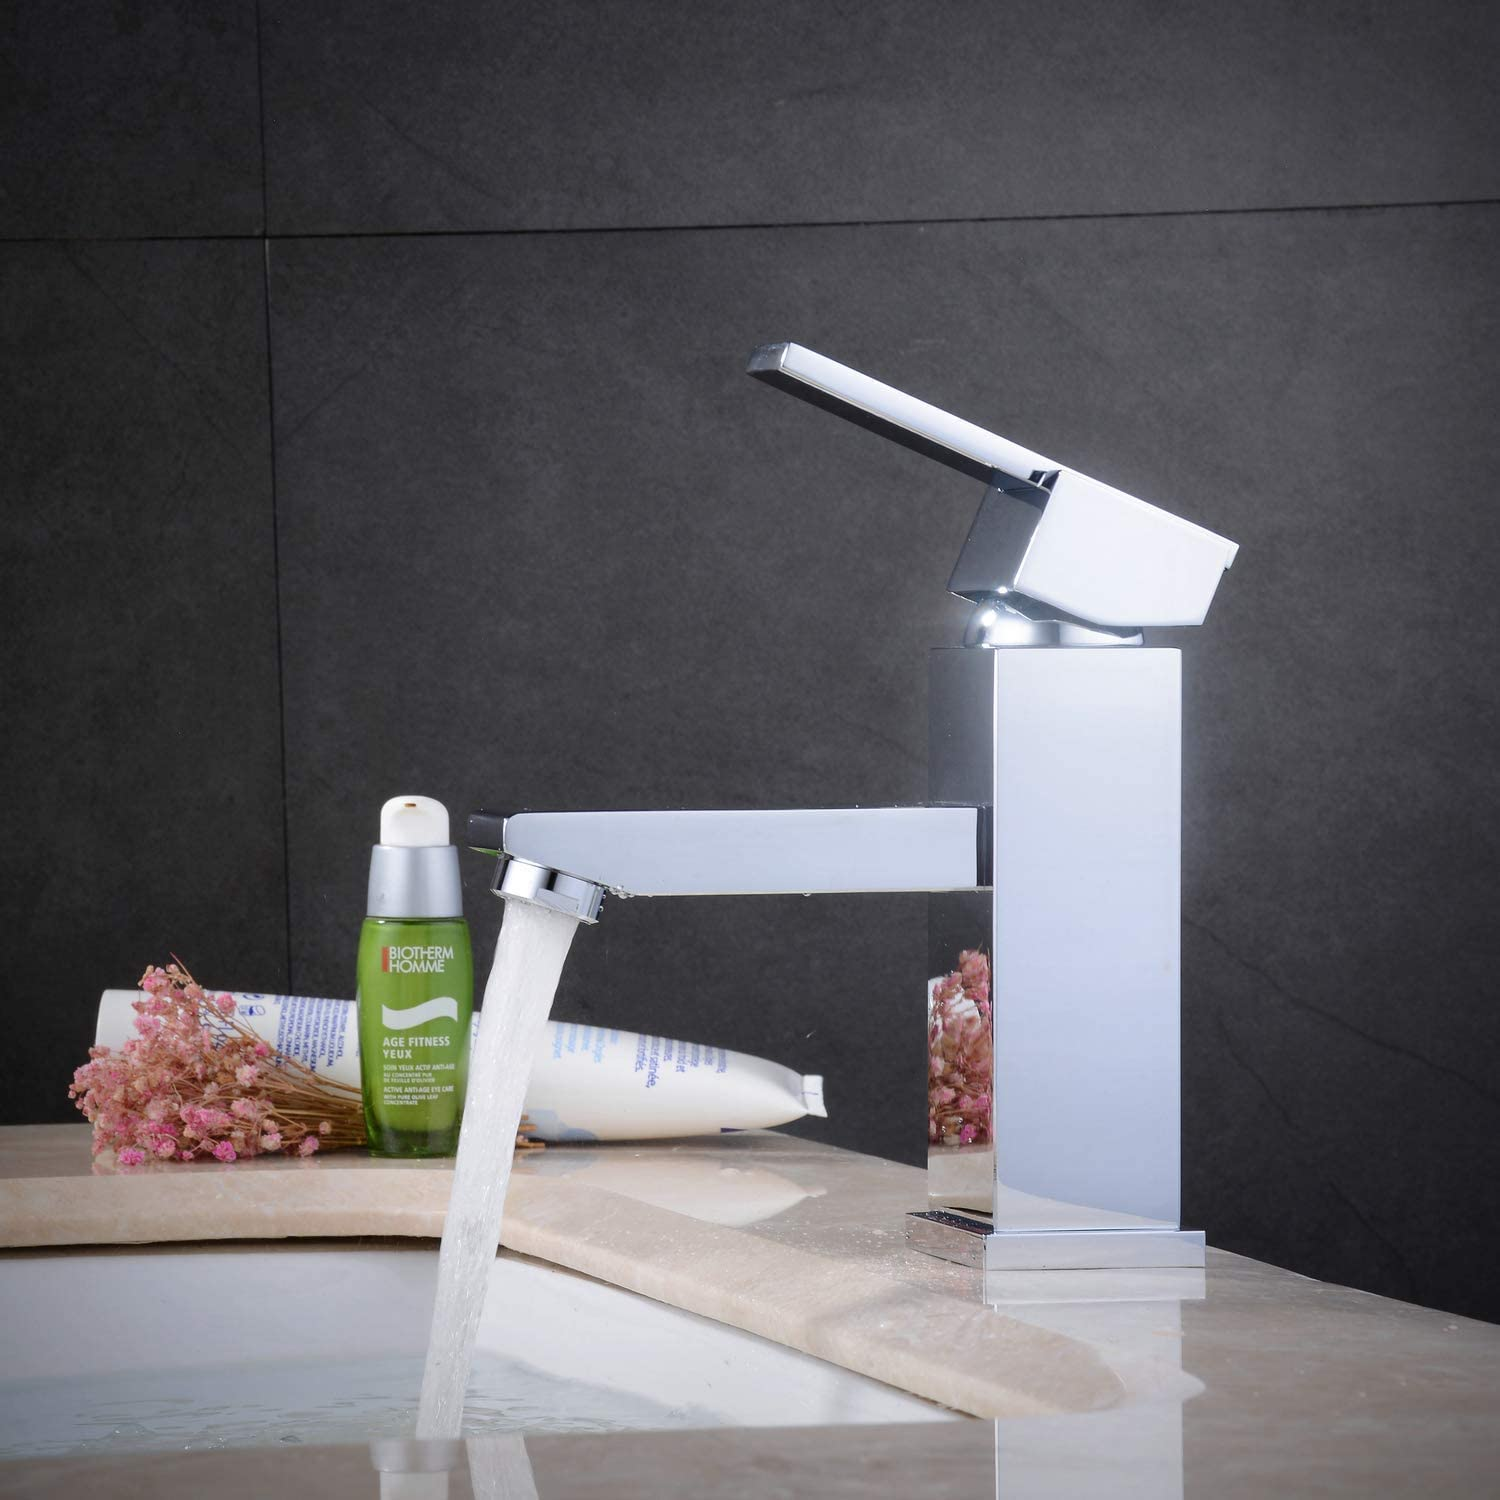 XINXI HOME Bathroom Sink Basin Mixer Tap Brass Mono Tap with Fittings, Brushed Nickel, Square Style